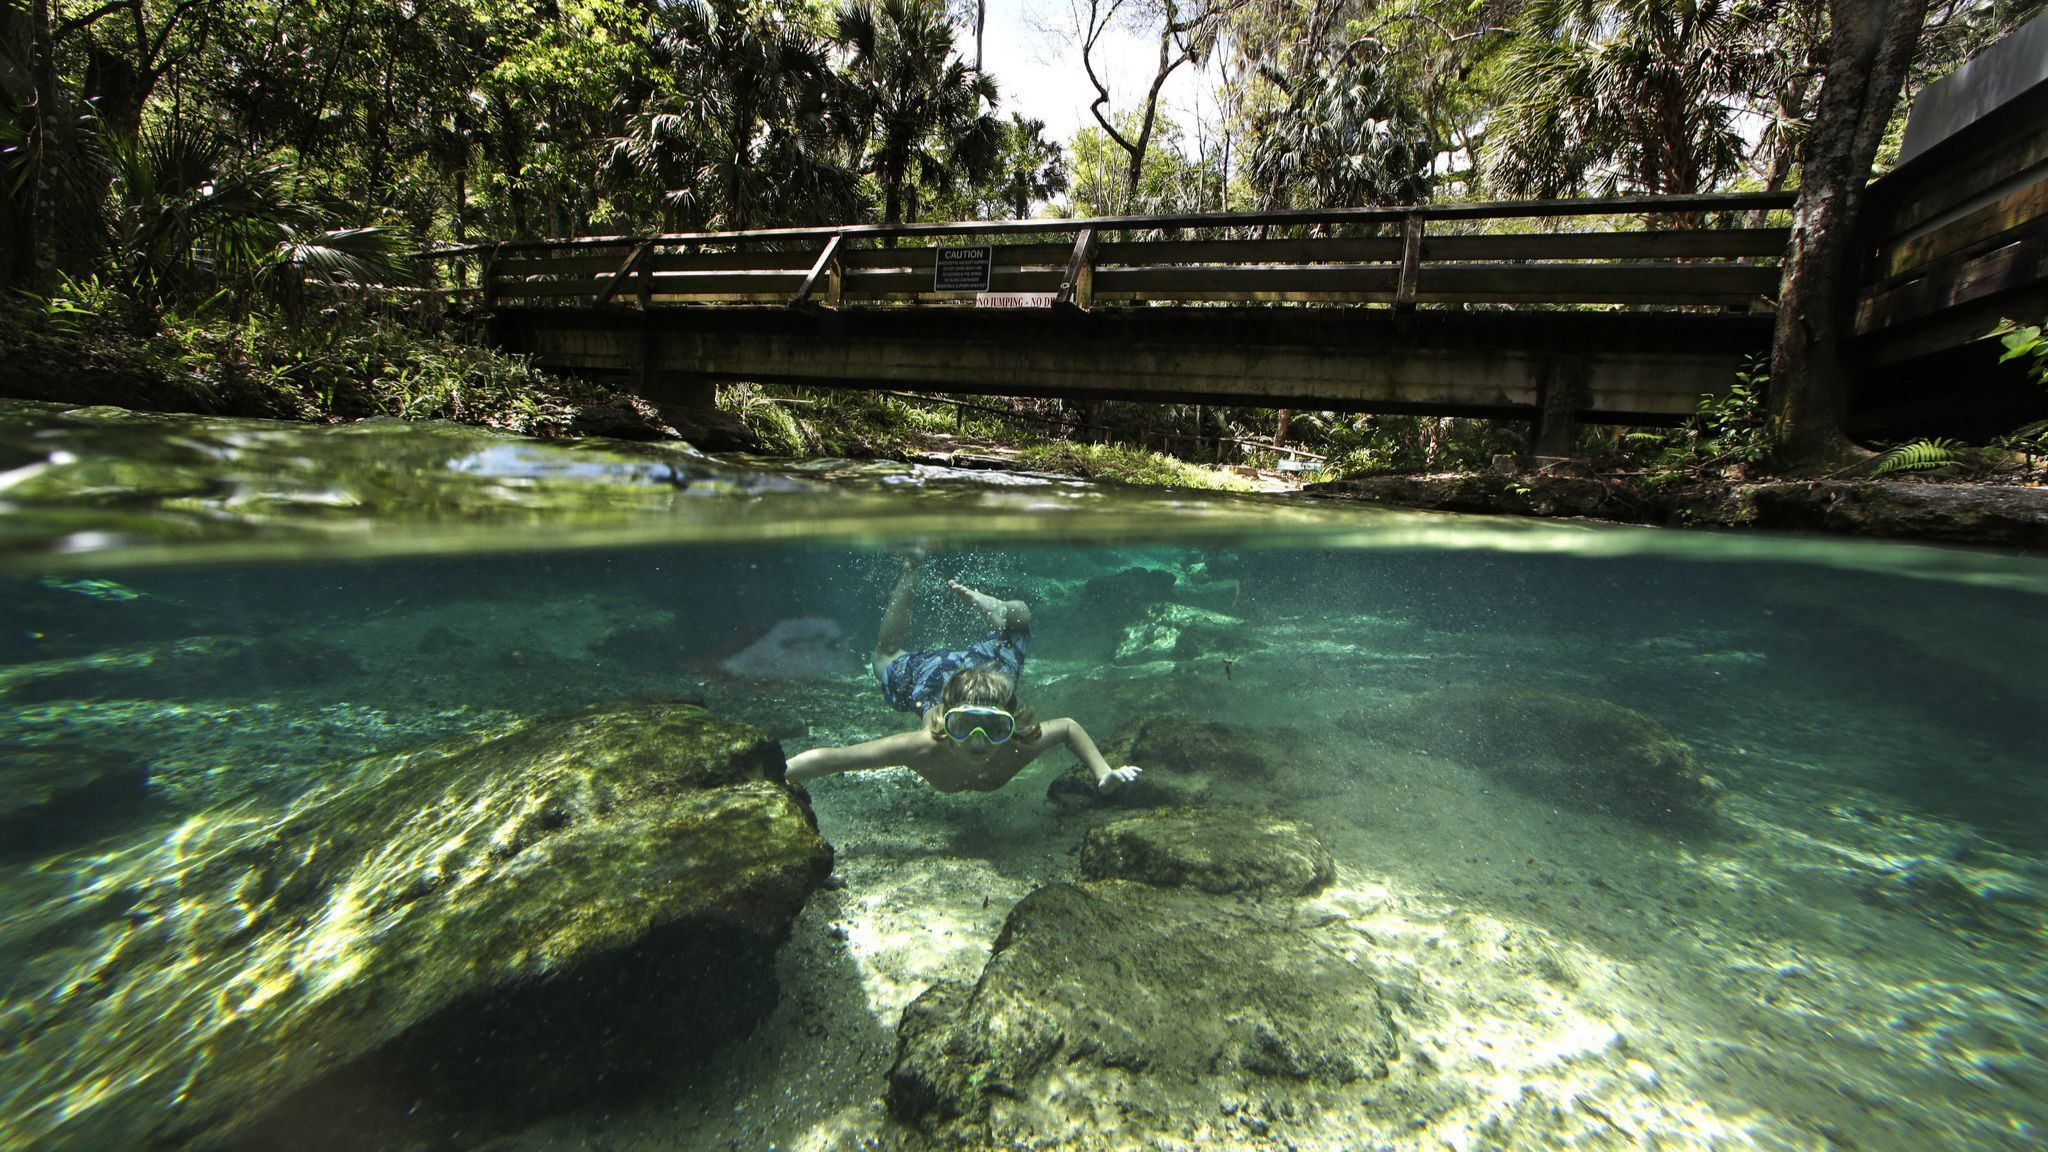 Asa Meslar swims along the Rock Springs Run at Kelly Park in Apopka, Fla., on Tuesday, March 10, 201